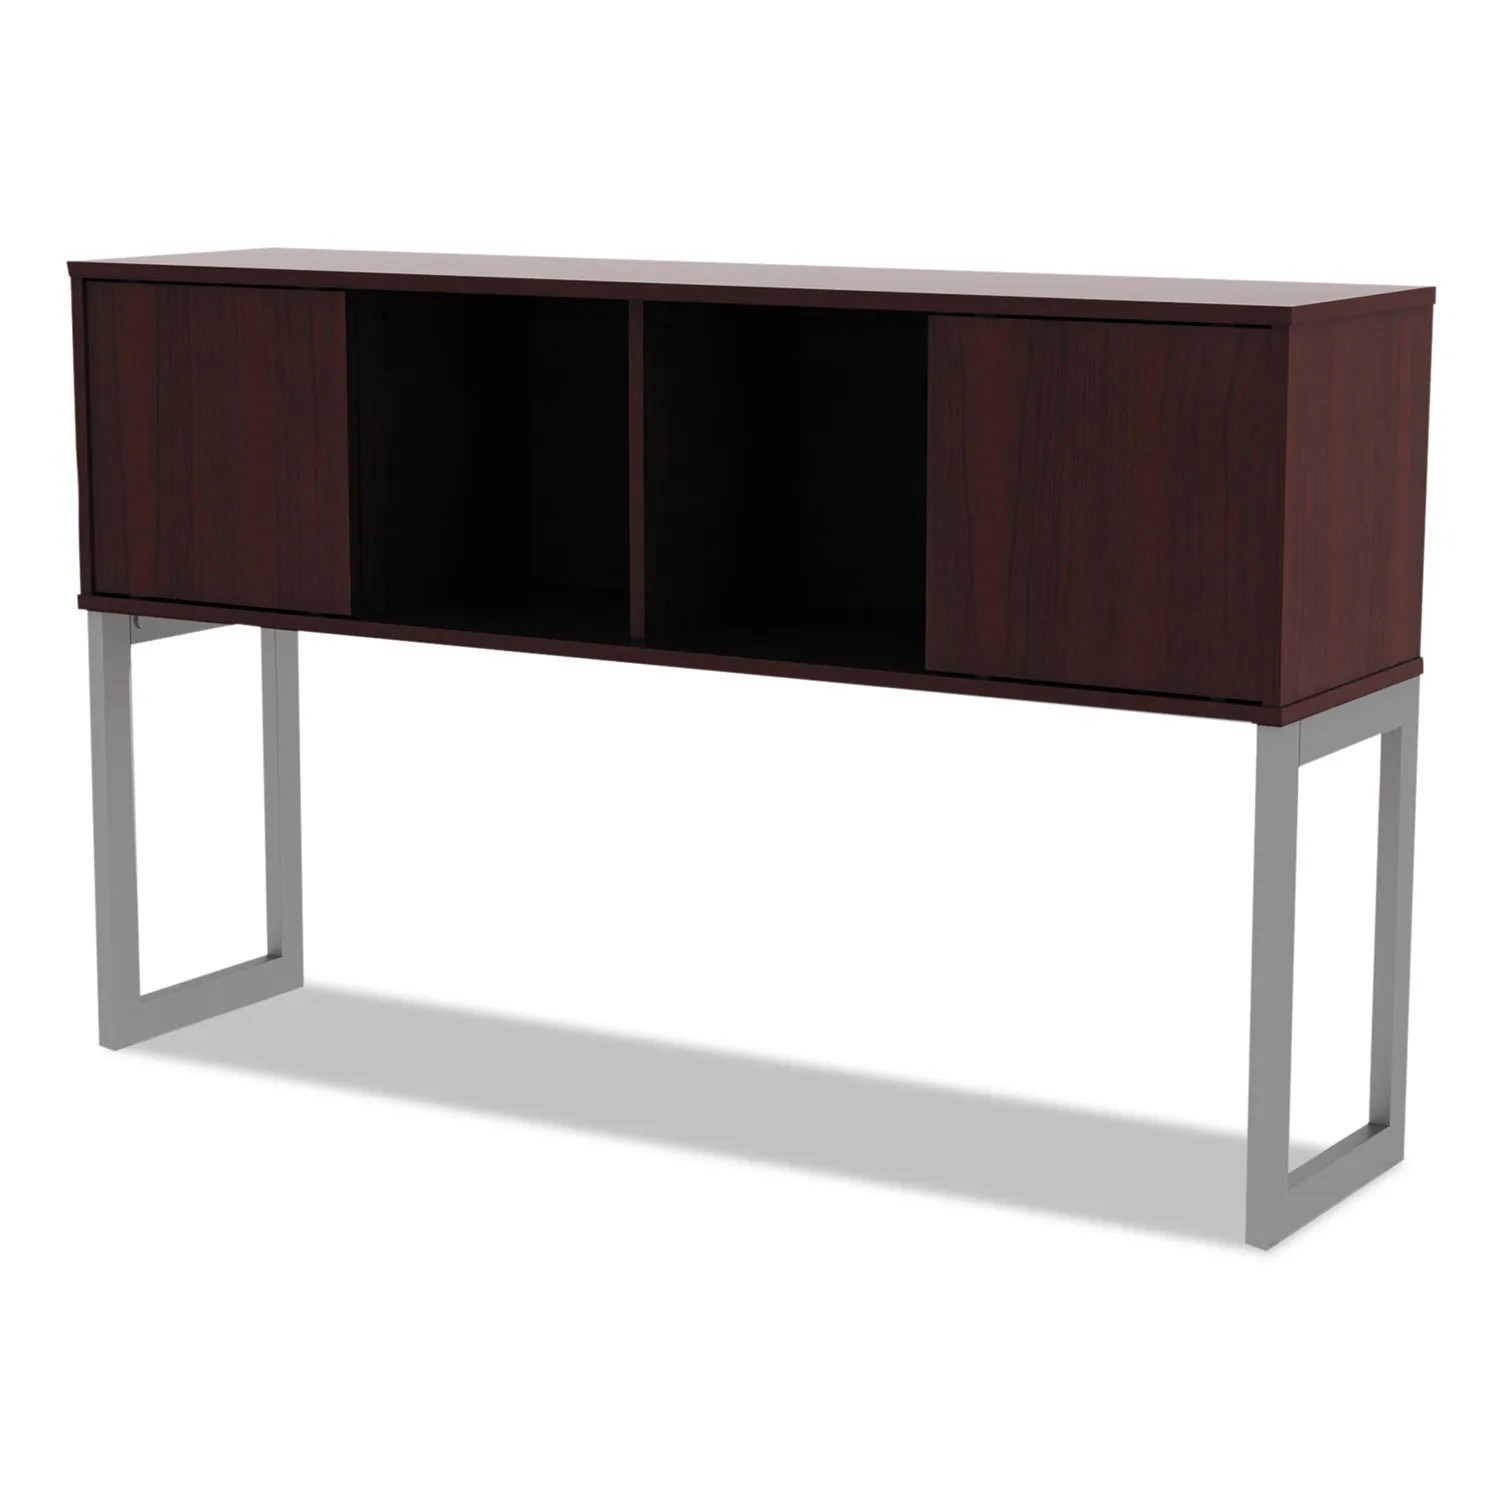 Mahogany Office Desk Alera Open Office Desk Series Hutch 60w X 15d X 36 1 2h Mahogany